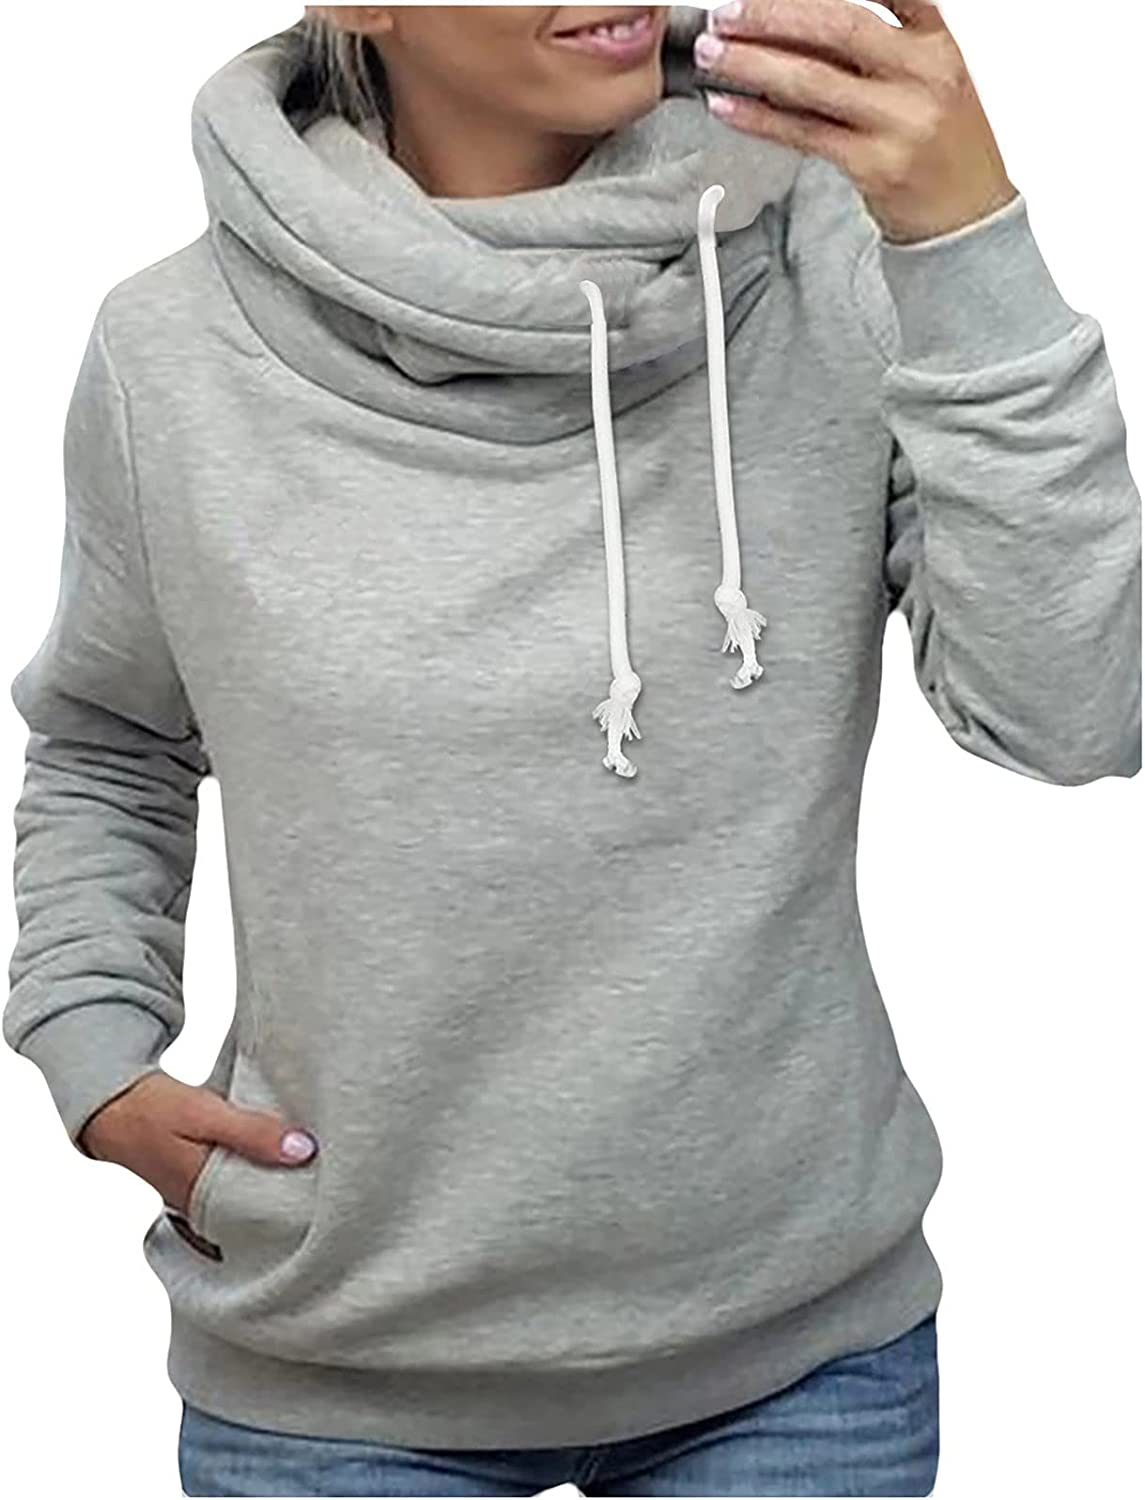 Pullover Sweatshirts for Women Plus Size Solid Turtleneck Long Sleeve Drawstring Comfy Casual Top With Pockets Slim Fit